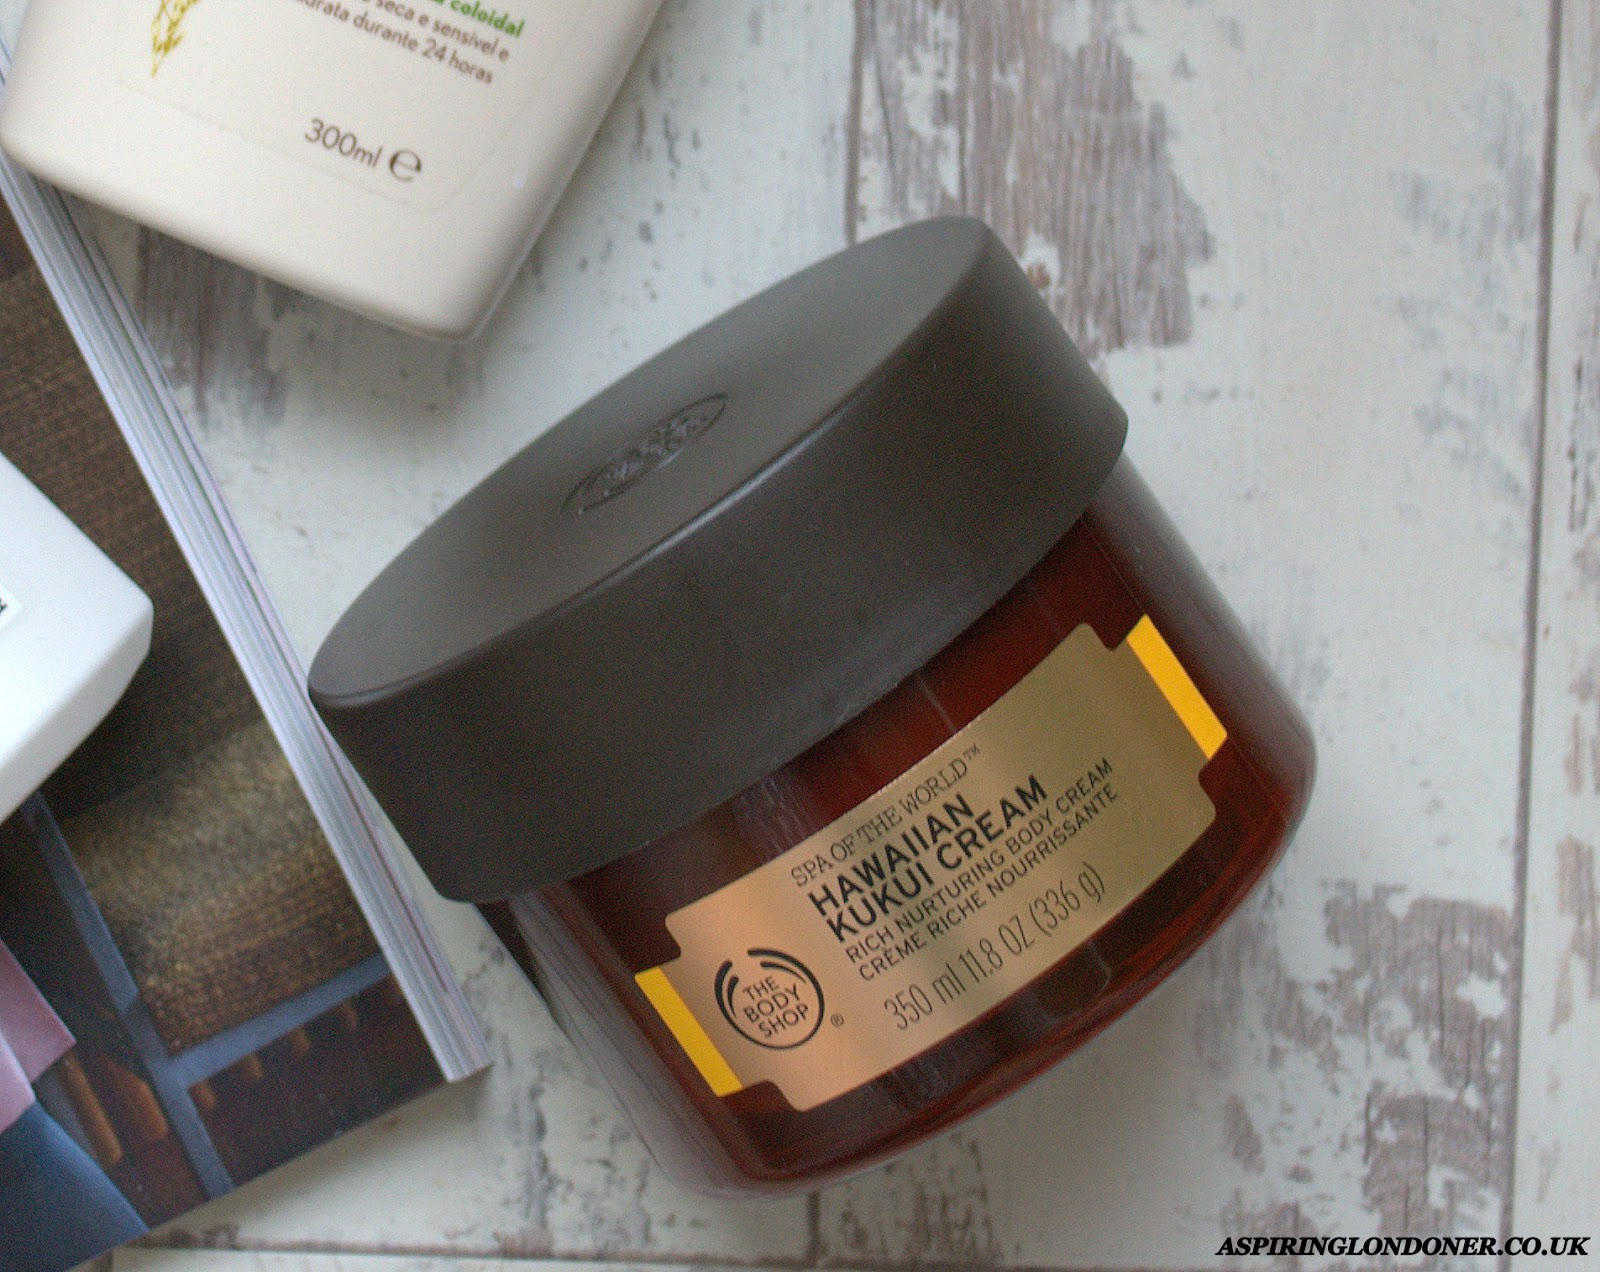 The Body Shop Spa of the World Hawaiian Kukui Cream Review - Aspiring Londoner